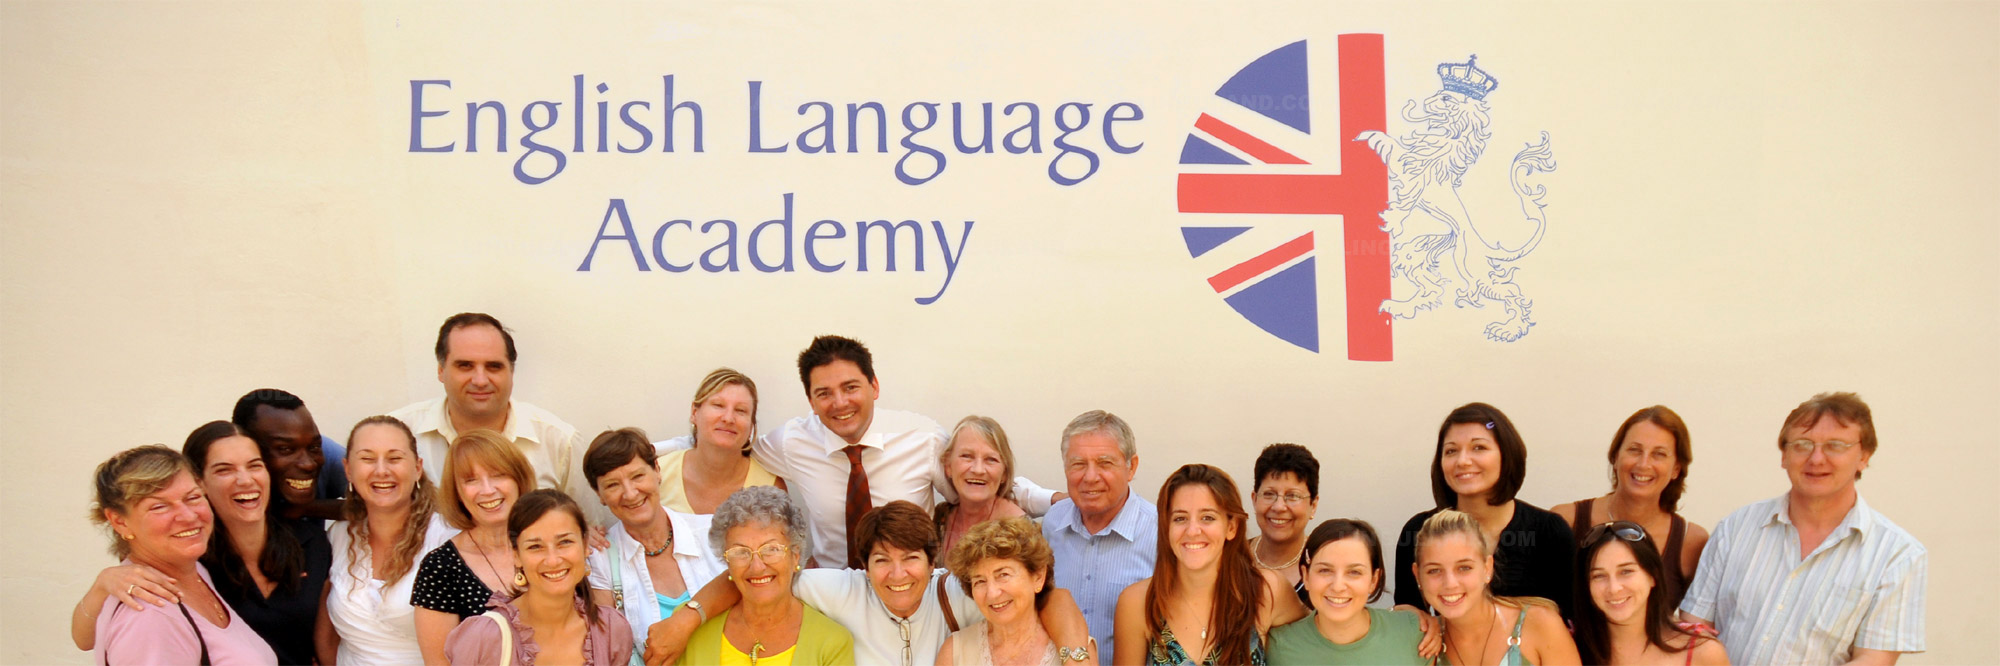 Experiencias y evaluaciones de English Language Academy